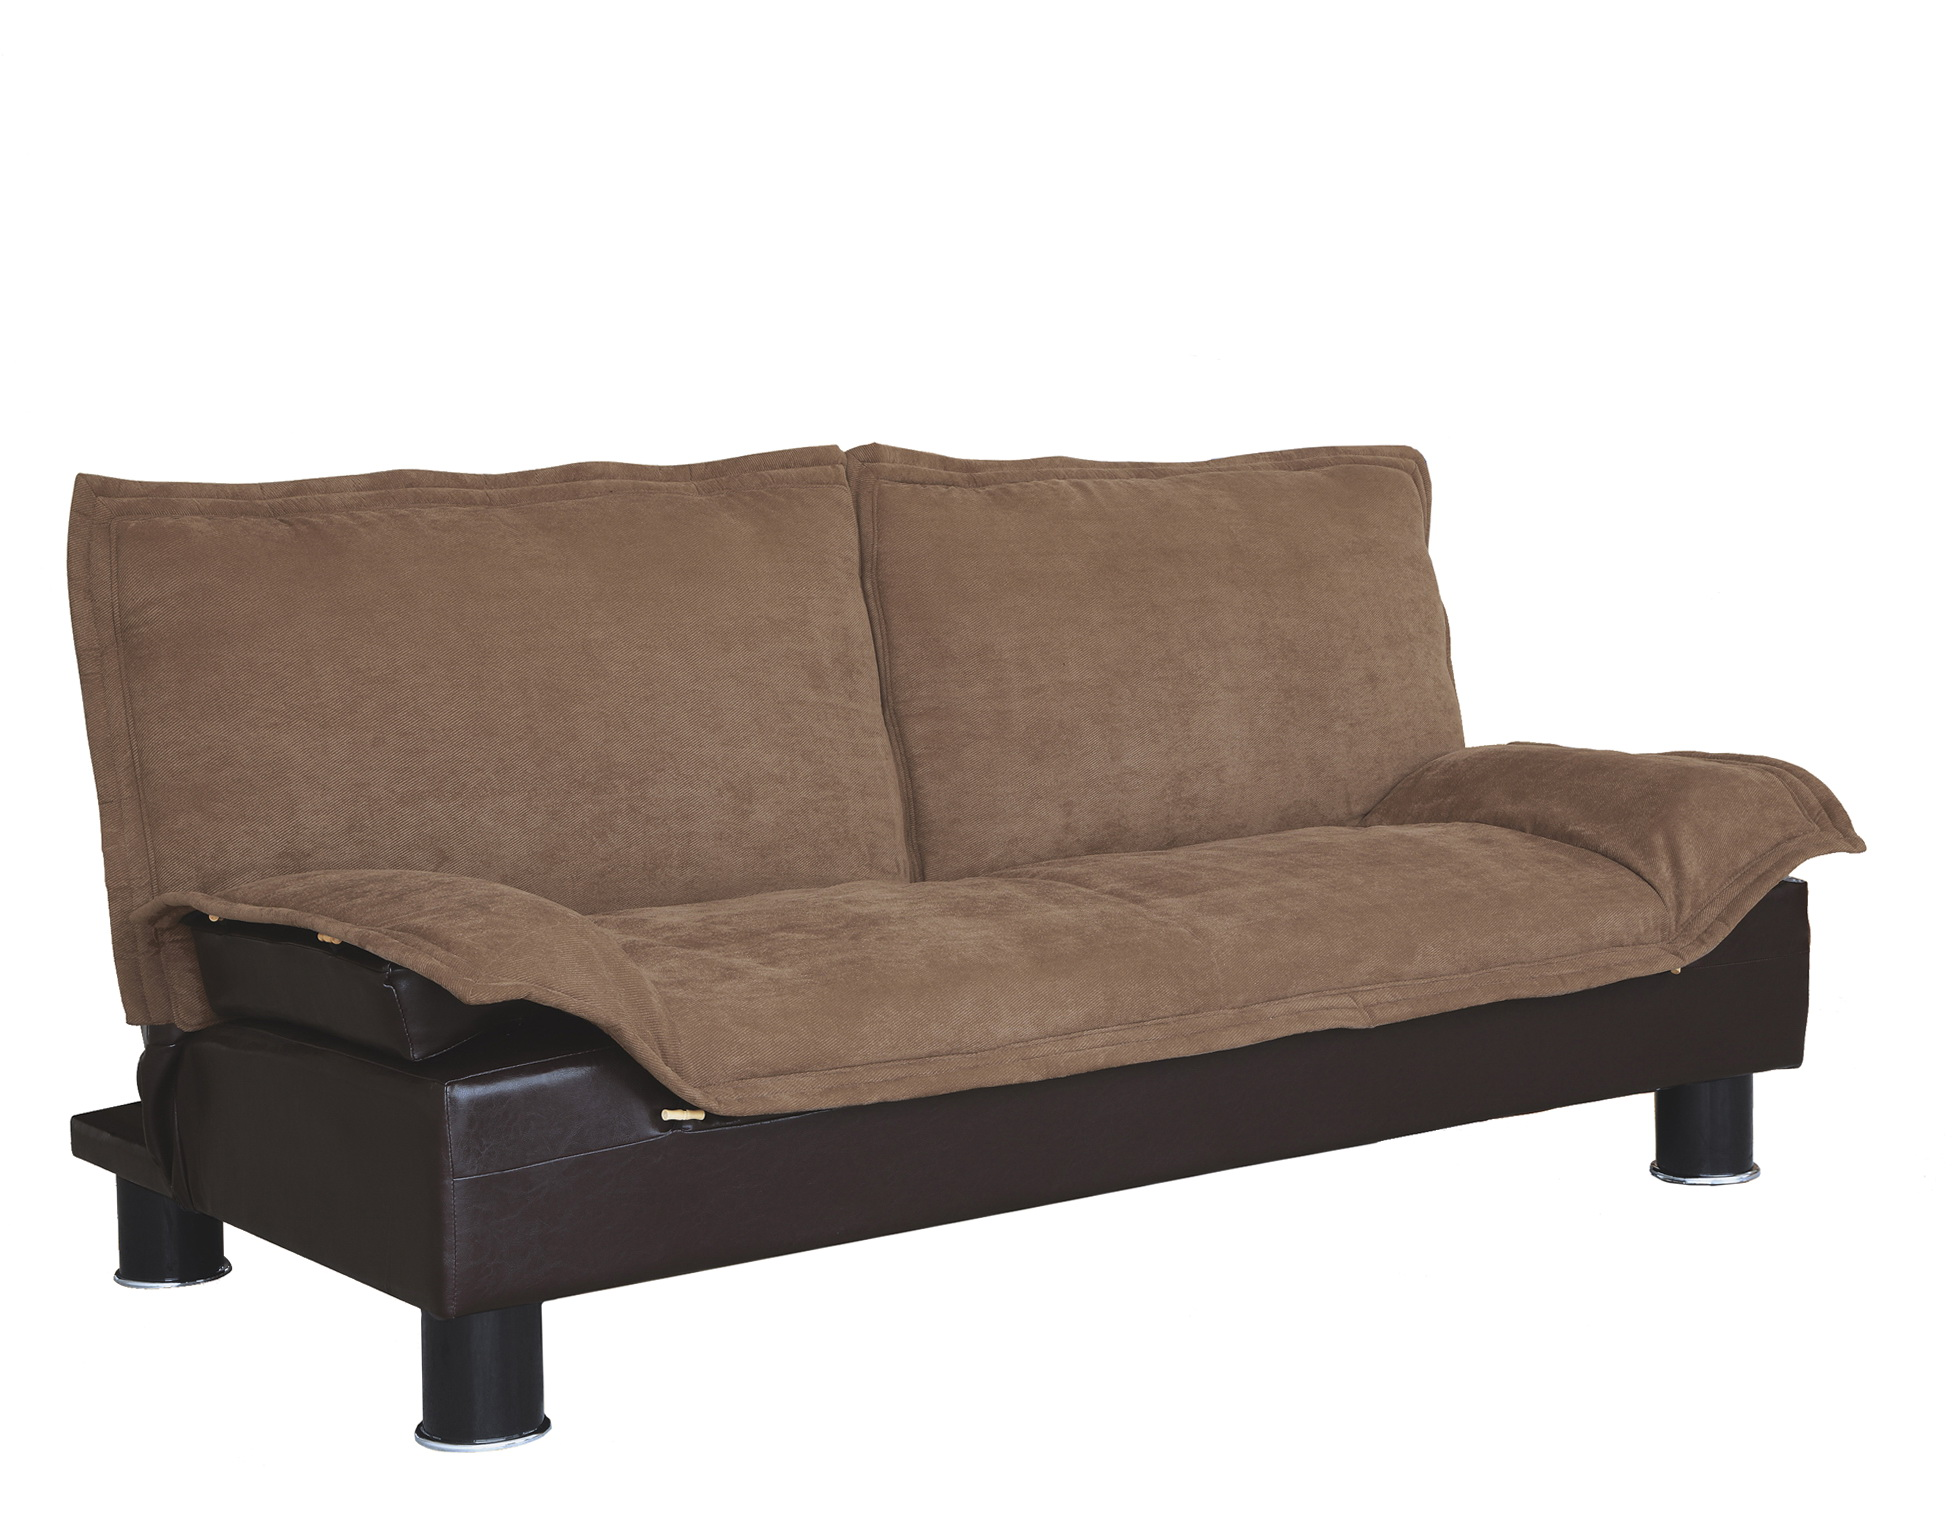 Cheap Sleeper Sofas Walmart